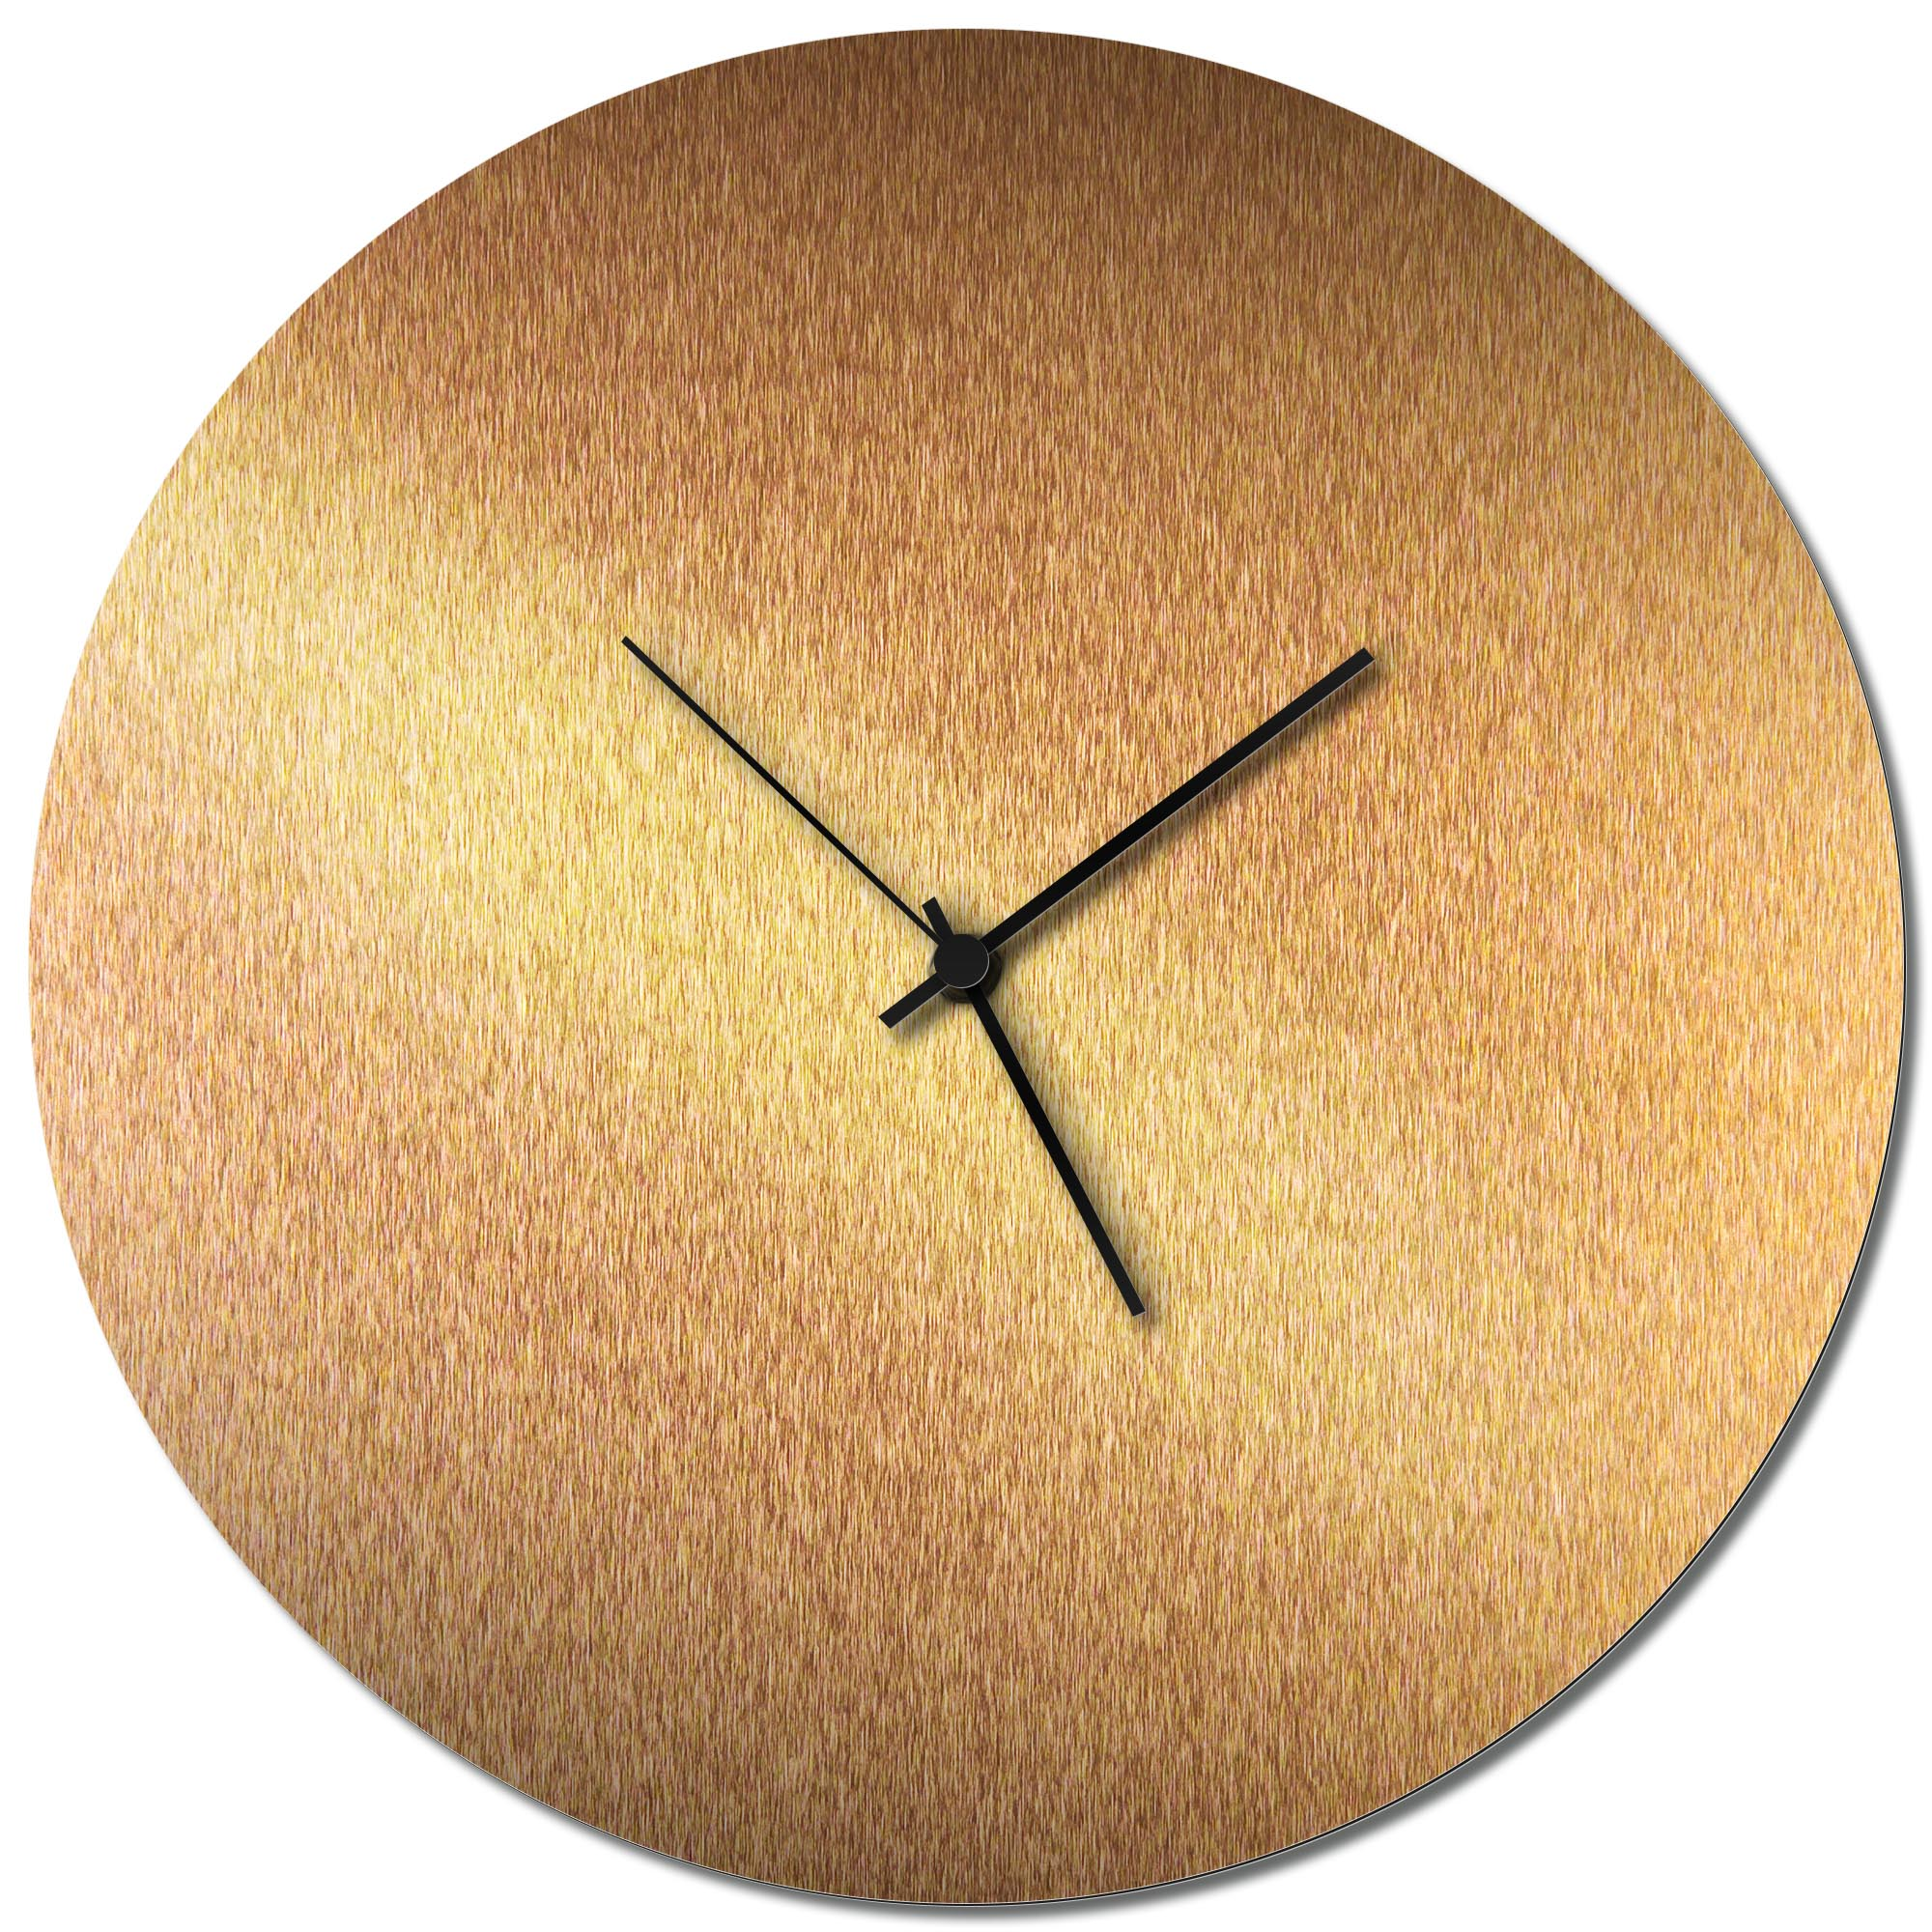 Adam Schwoeppe 'Bronzesmith Circle Clock Large Black' Midcentury Modern Style Wall Clock